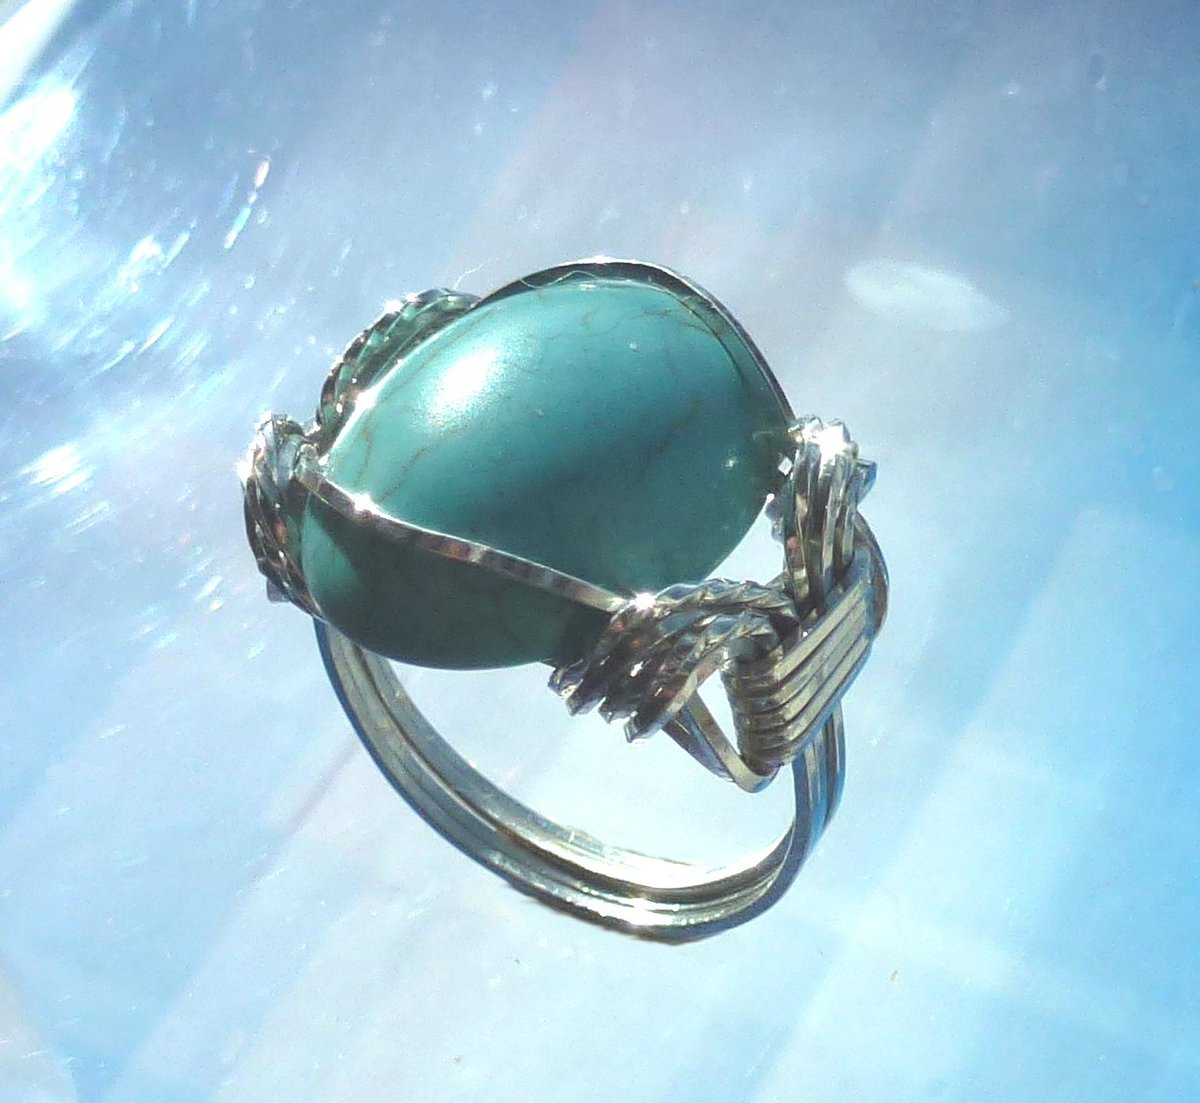 Turquoise Howlite Ring Wire Wrapped Jewelry Handmade in Silver with Fre… https://t.co/2YK6TniCD4 #etsymntt #handmade https://t.co/zLGOOHrOux